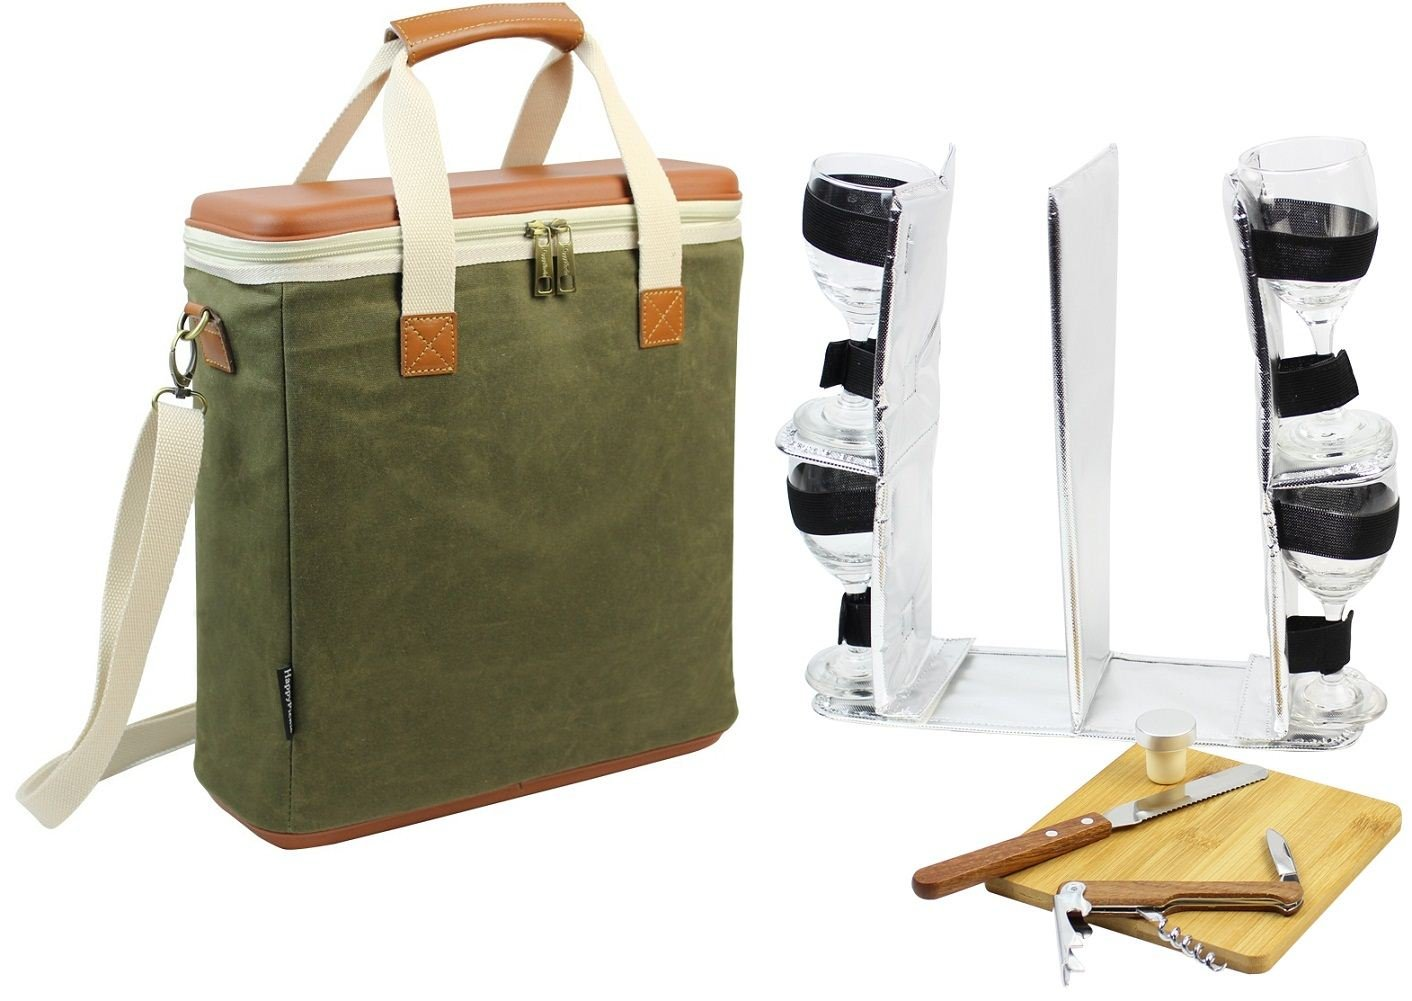 Wax Canvas 3 Bottle Wine Carrier, EVA Molded Beverage Cooler Bag for Travel, Champagne Drink Carrying Tote with 4 Glasses, Wine Opener & Stopper, Bamboo Cheese Board and Knife Set as Gift by HappyPicnic